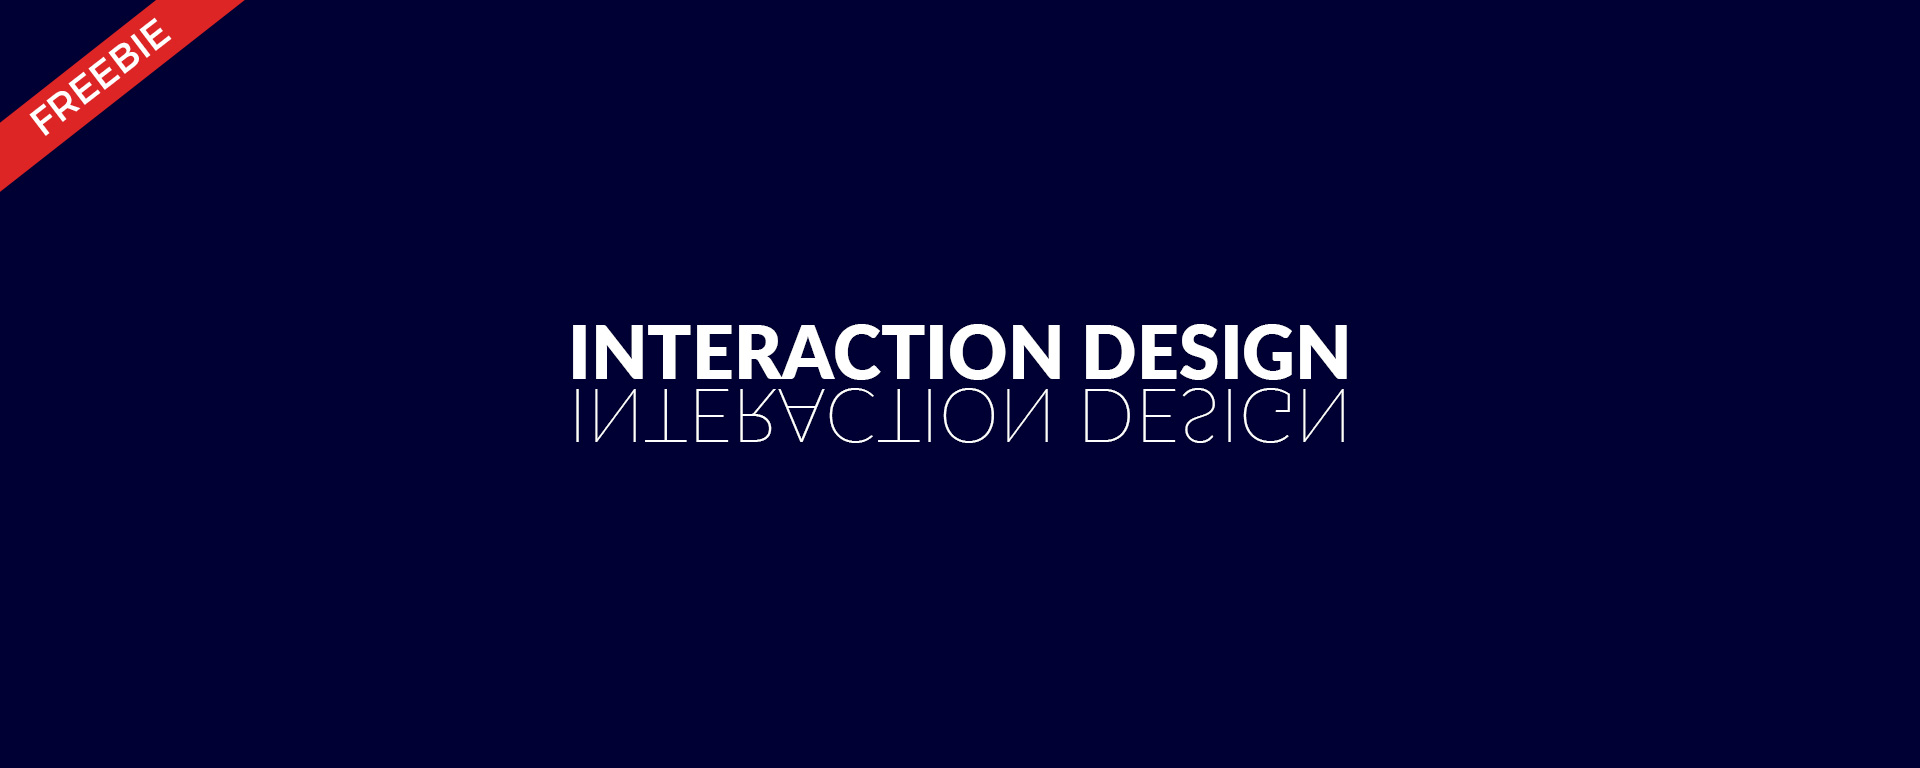 Interaction Design FREEBIES